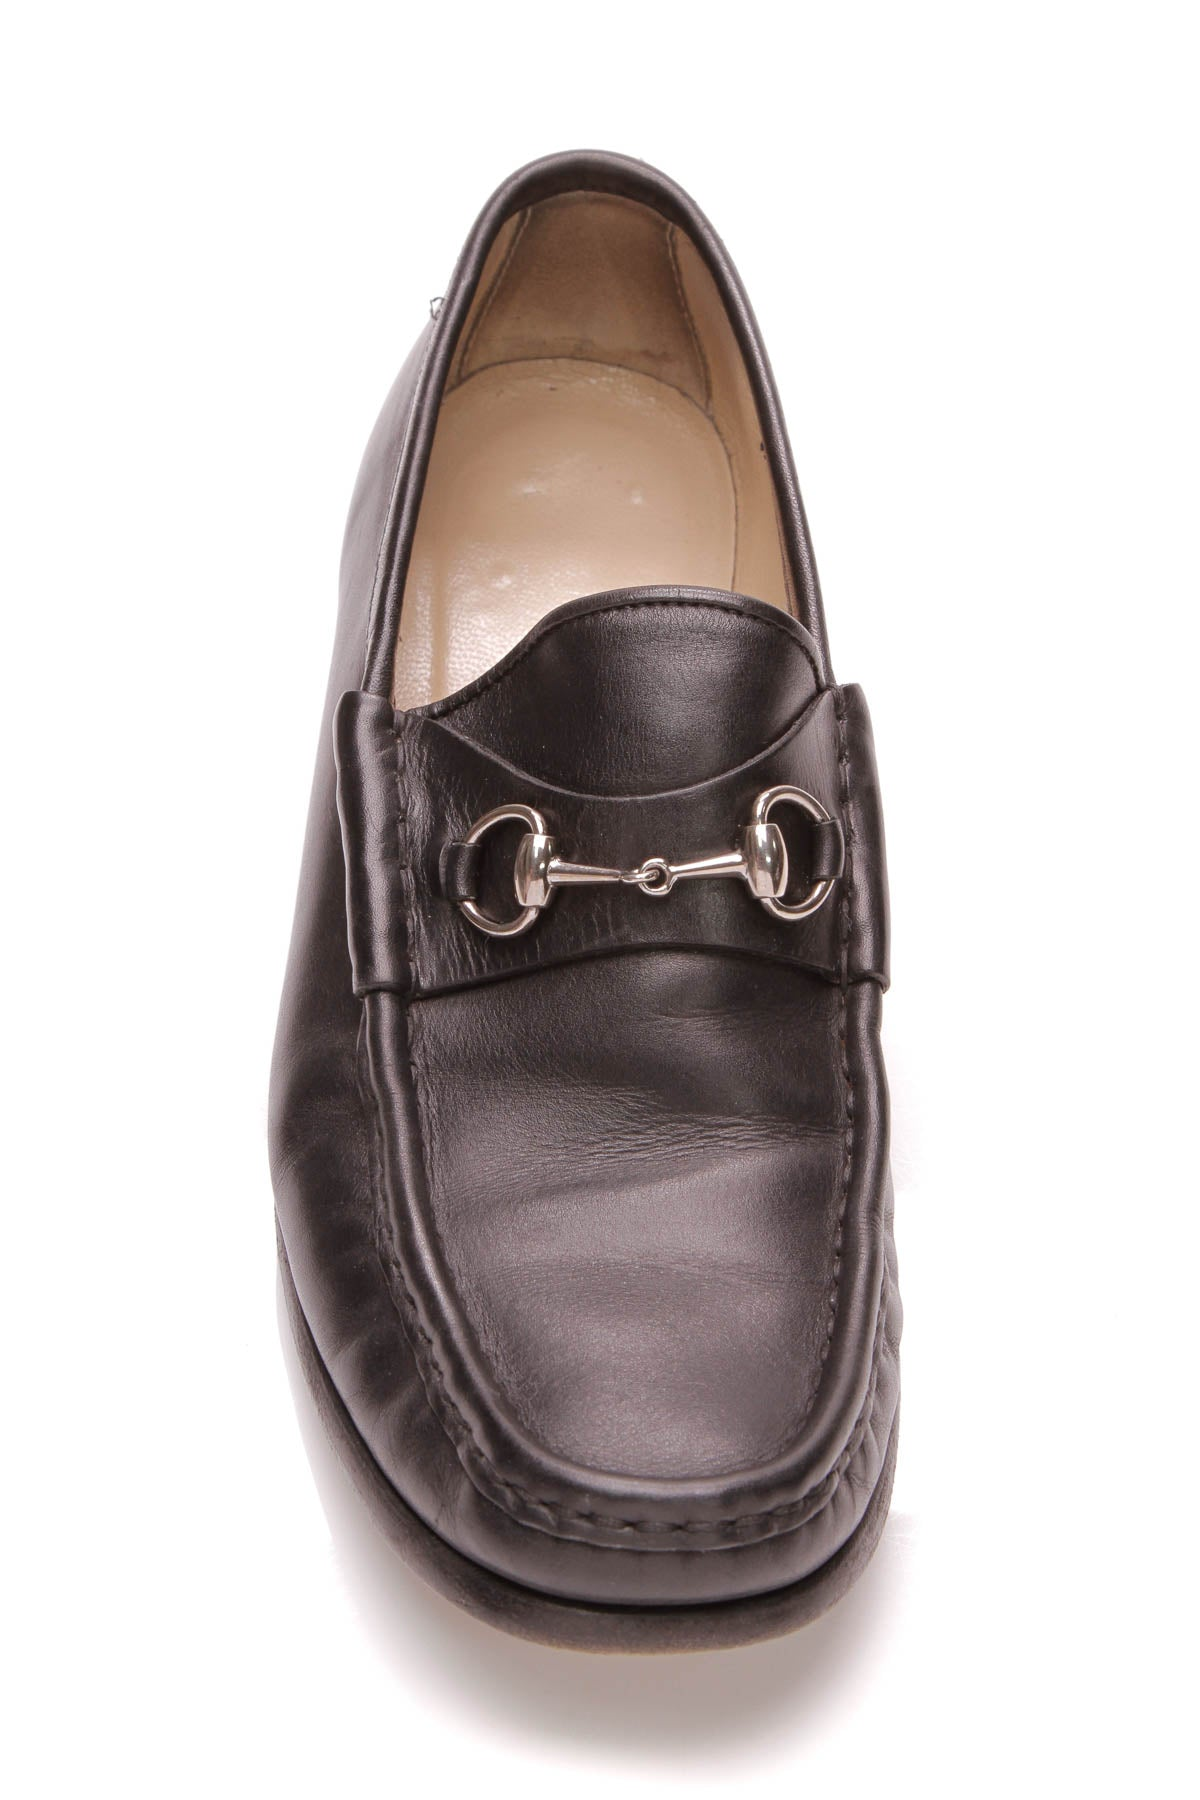 3b64af3b082 Gucci Classic Horsebit Loafers - Black Leather Size 8.5 – Couture USA